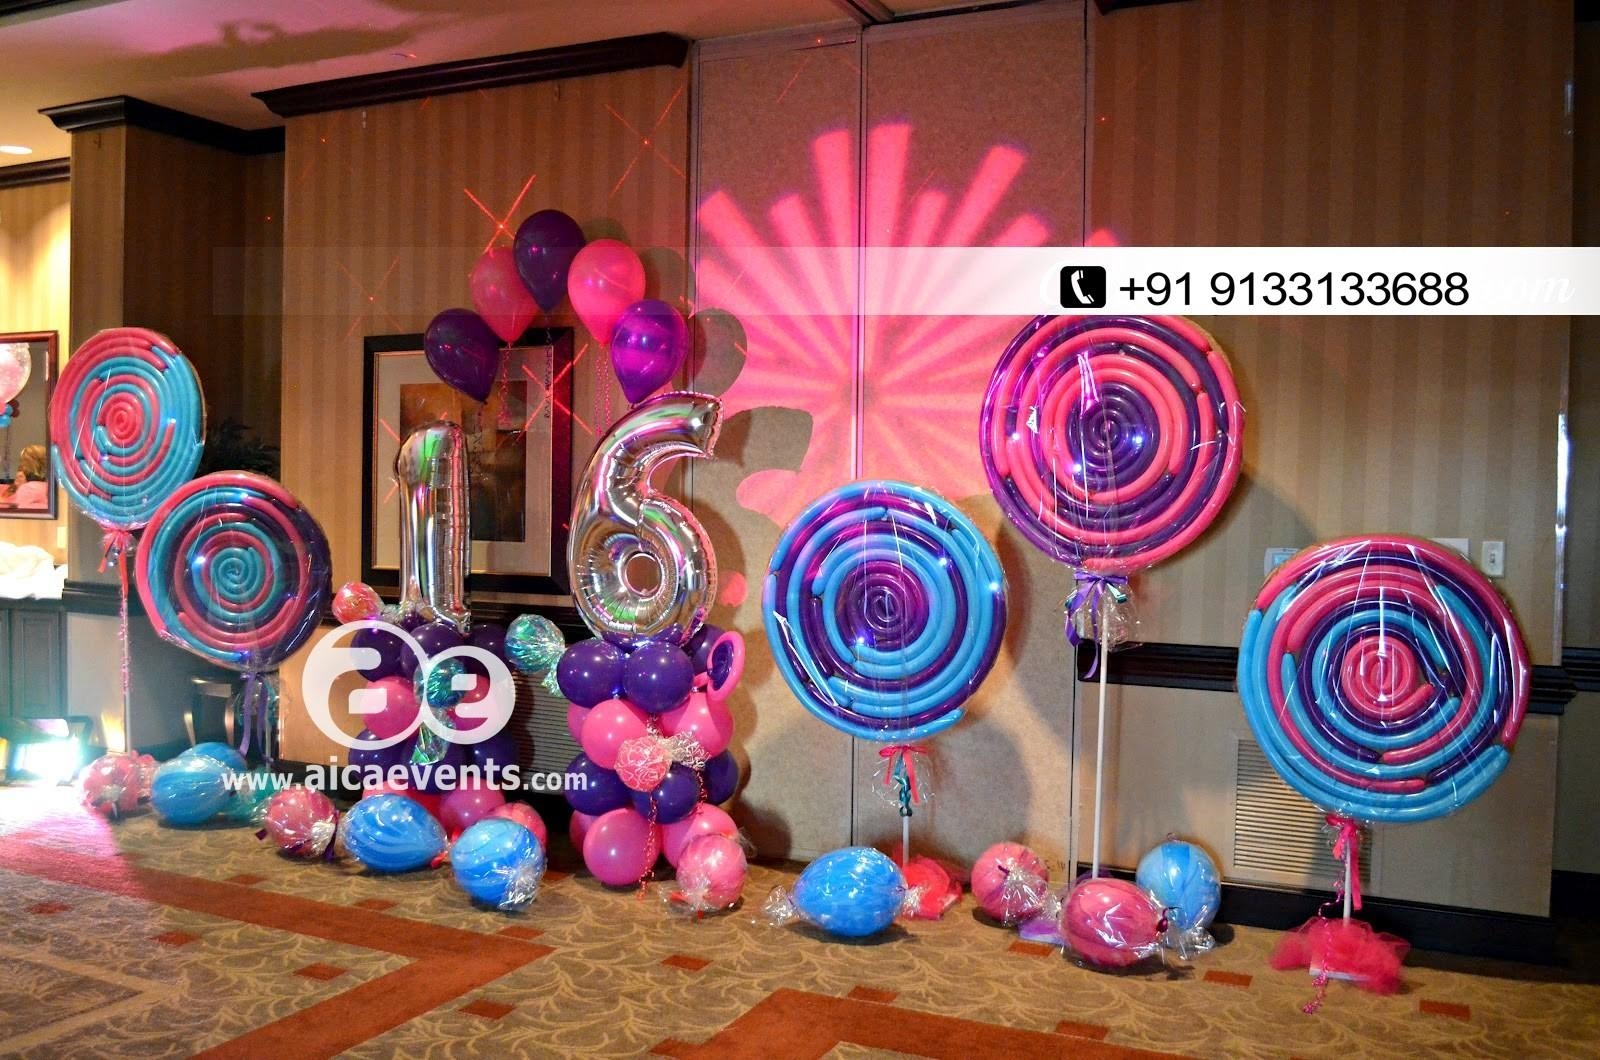 Aicaevents Candy Theme Decorations Hyderabad